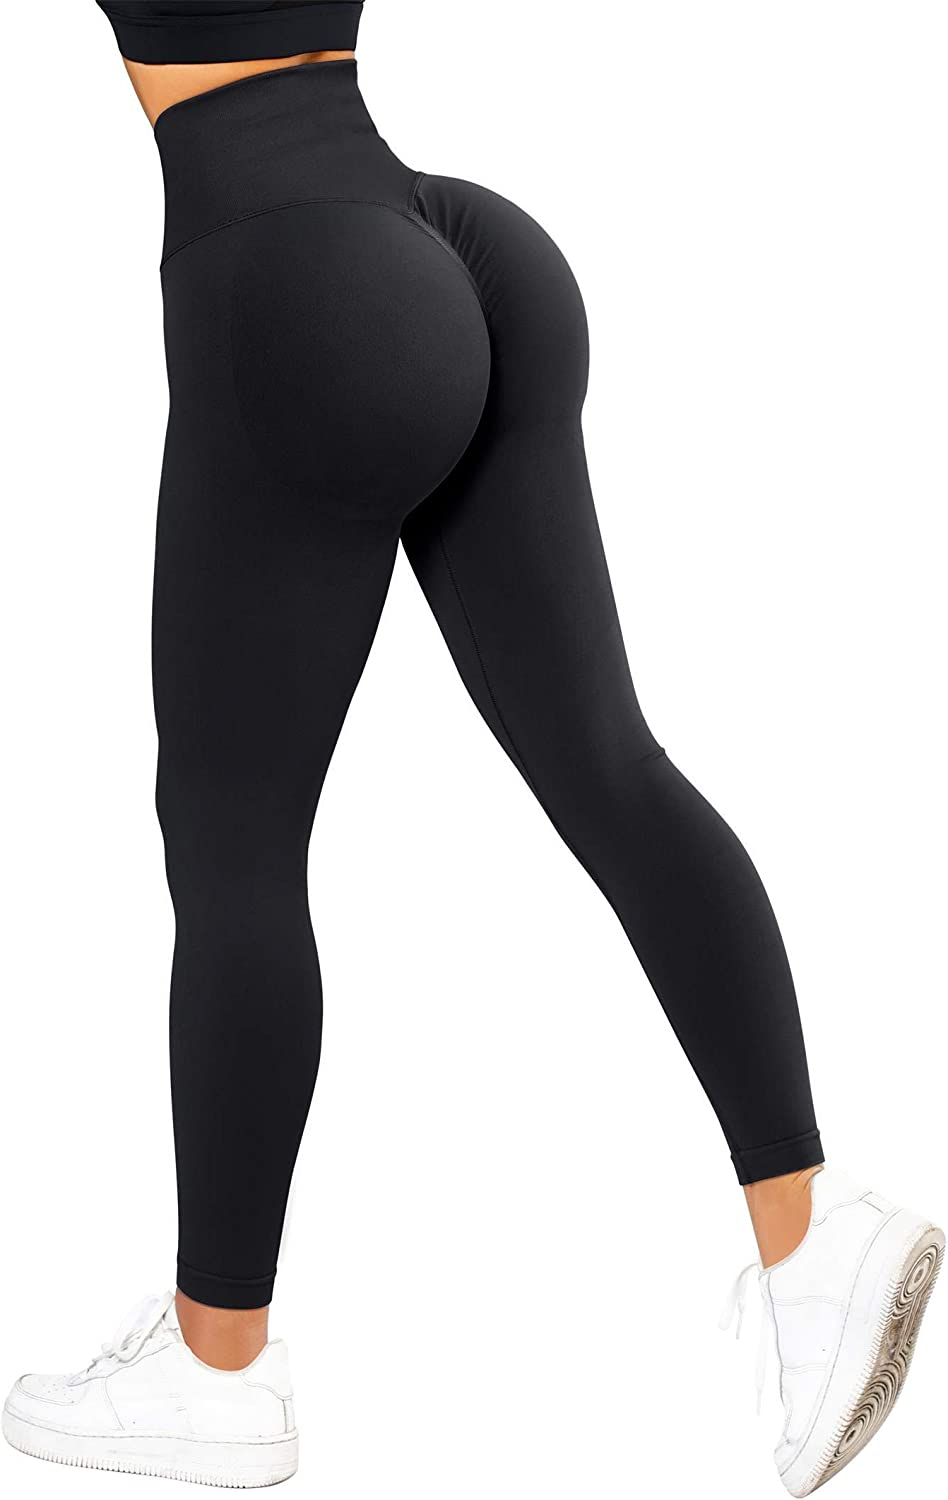 RXRXCOCO Womens High Waist Tummy Control Leggings Ruched Butt Lift Yoga Pants Workout Tights